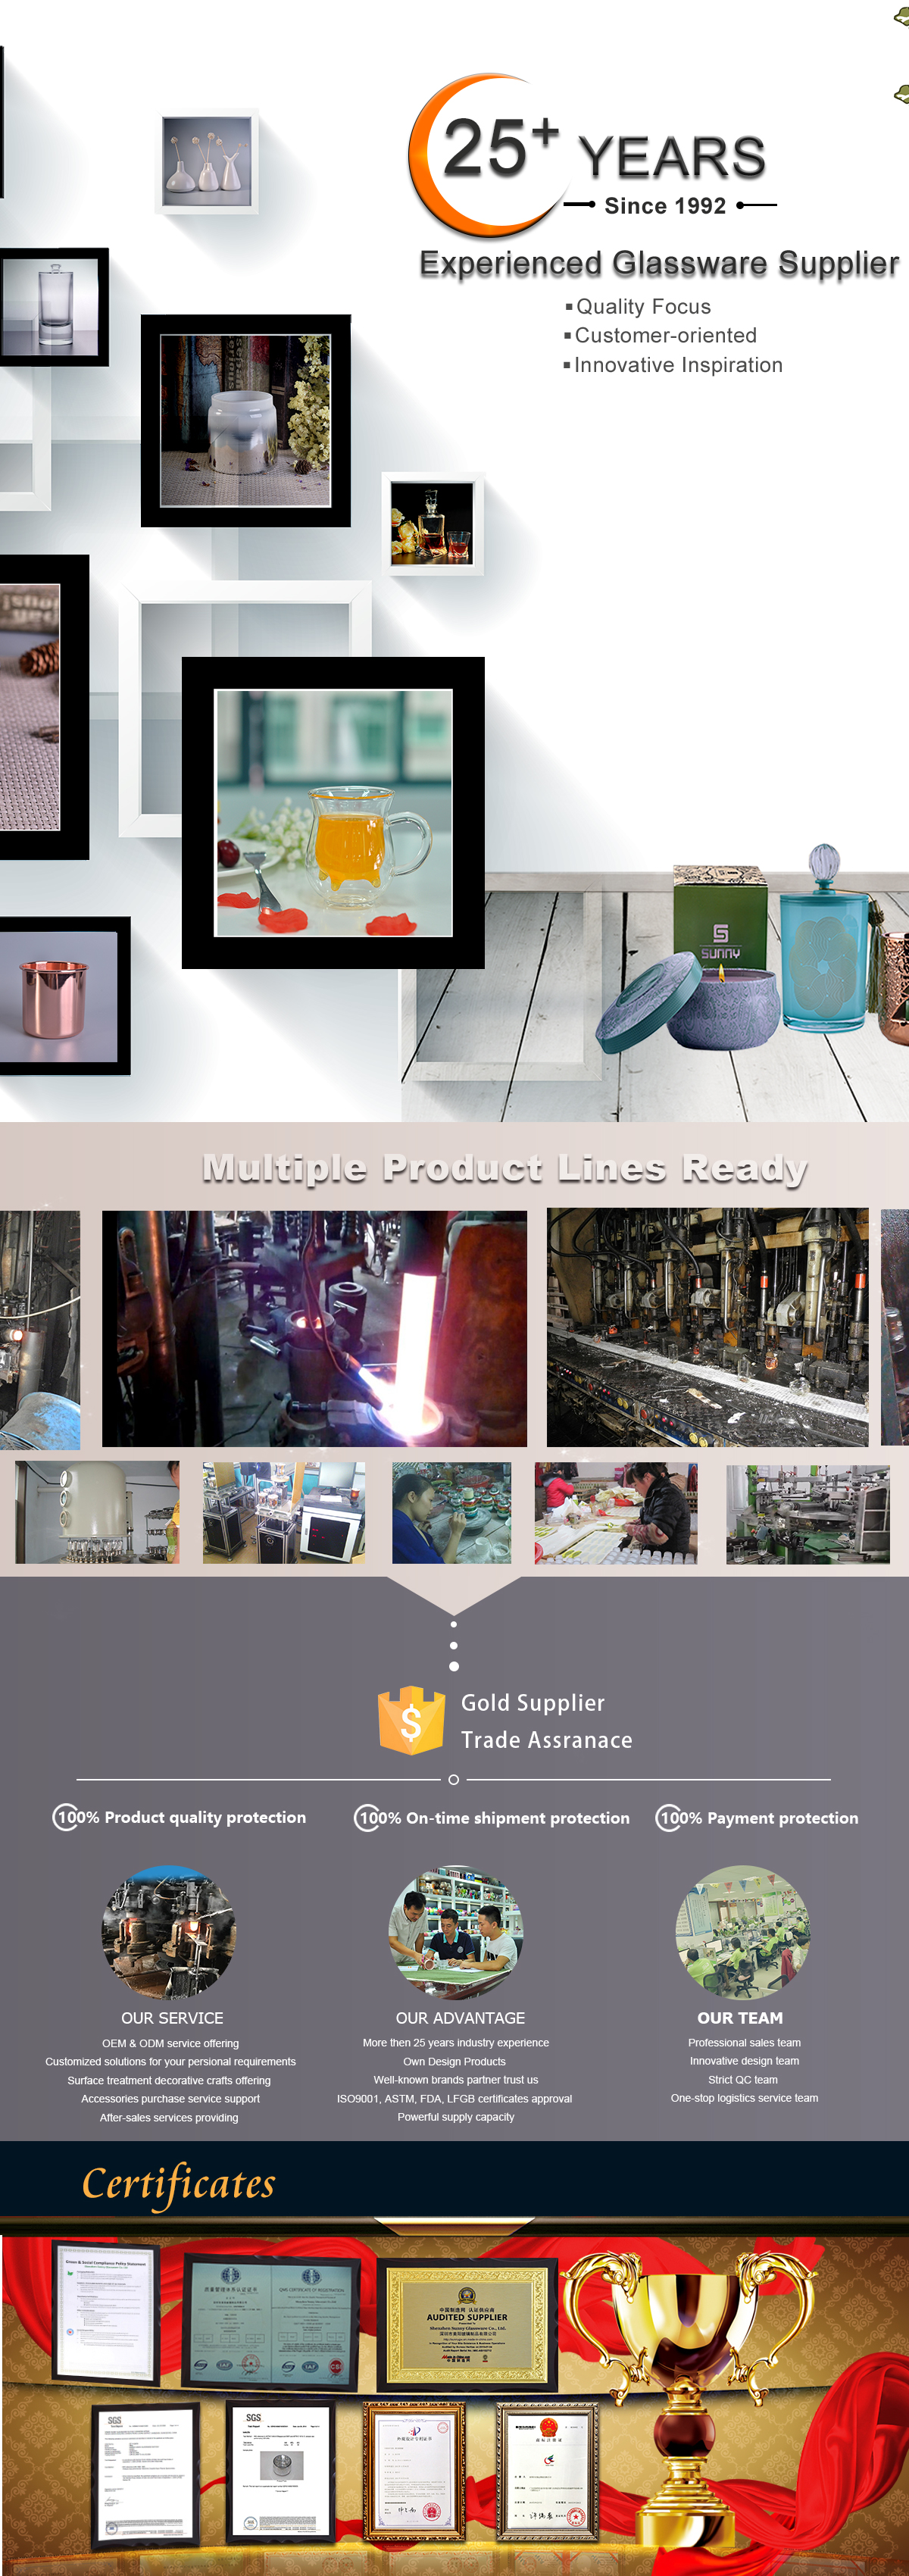 Sunny Glassware Supplier